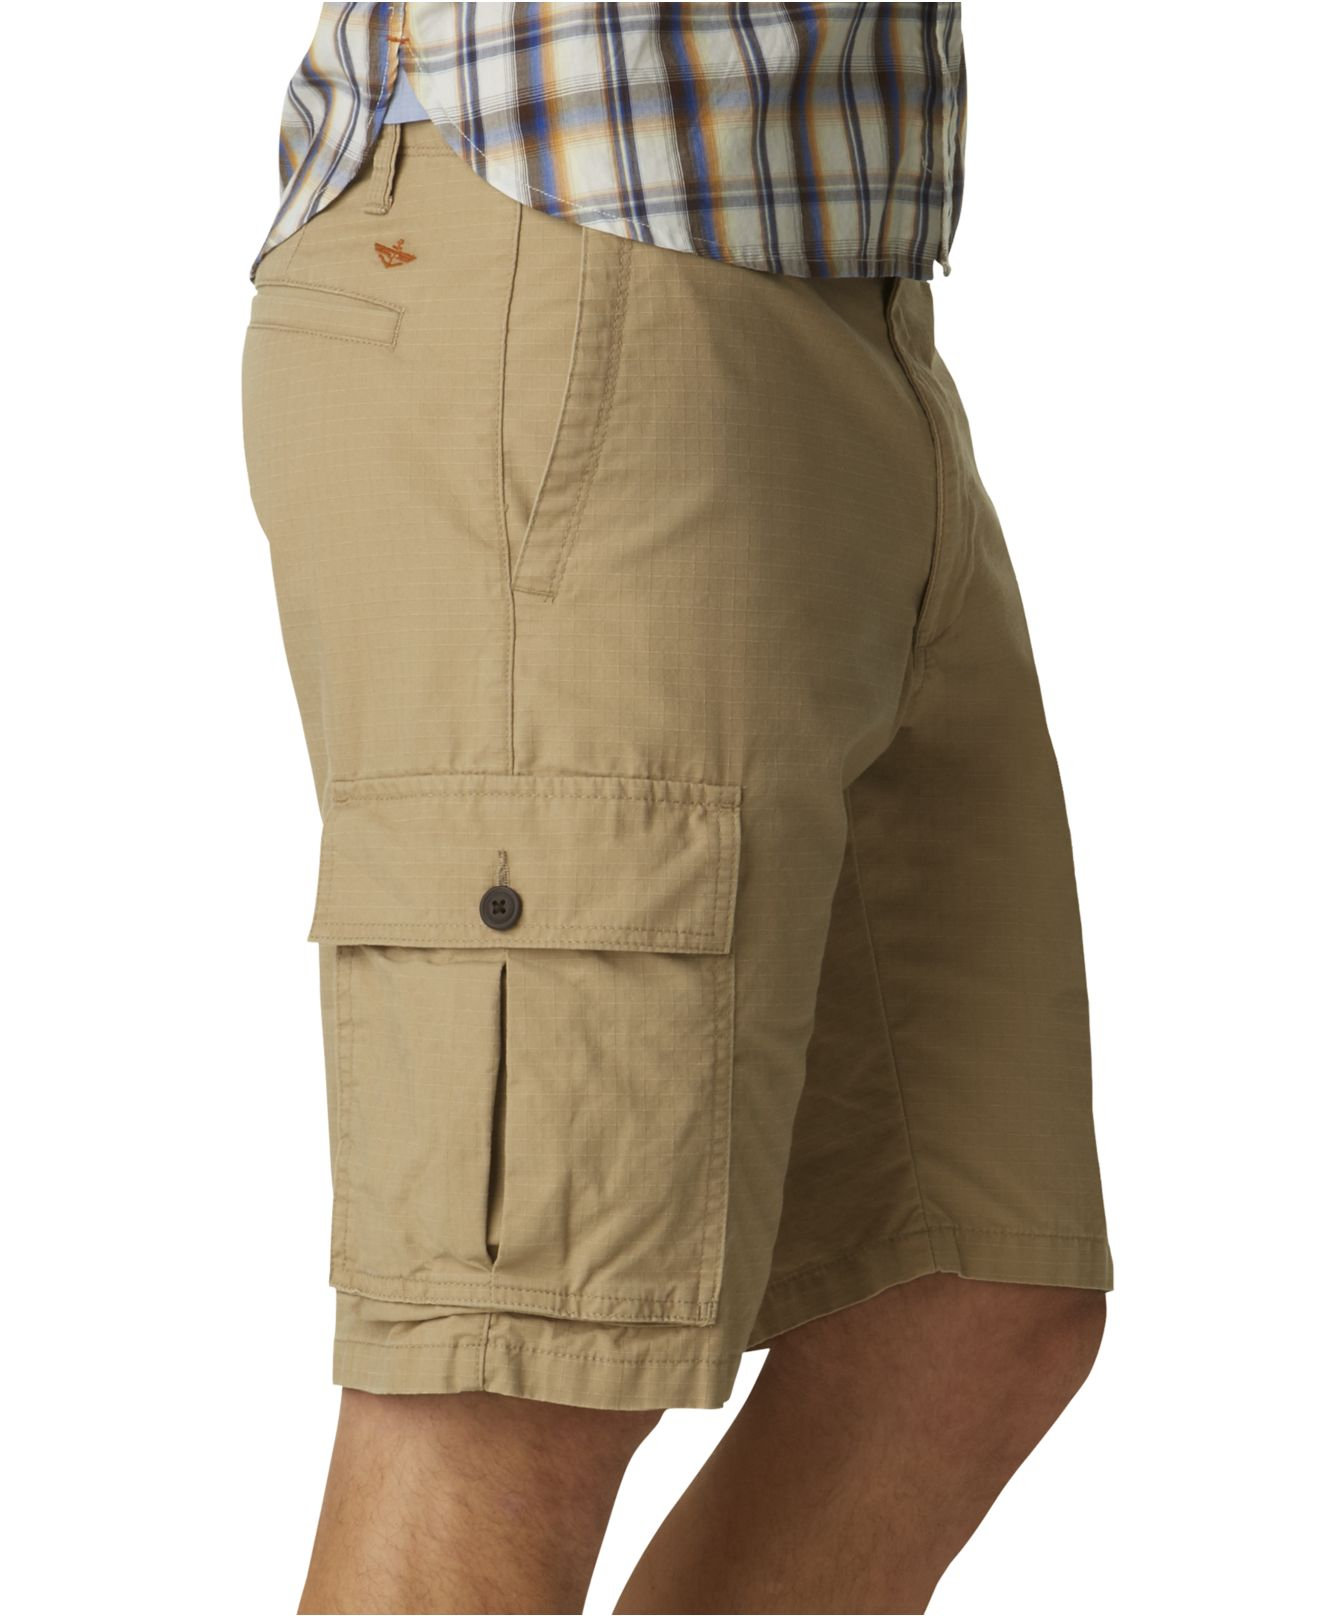 Lyst  Dockers Ripstop Cargo Shorts in Green for Men